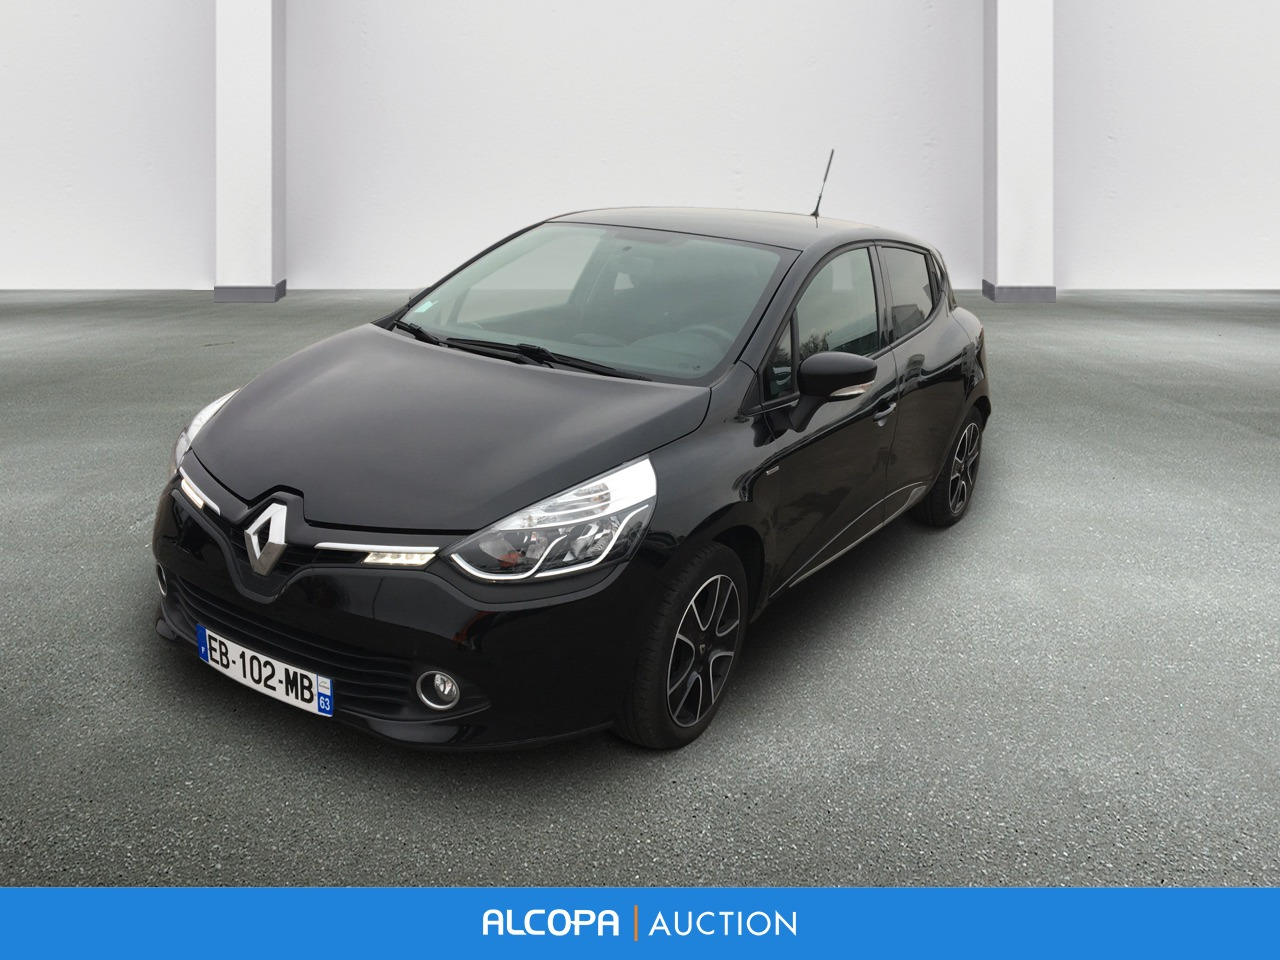 renault clio iv clio iv tce 90 sl limited alcopa auction. Black Bedroom Furniture Sets. Home Design Ideas